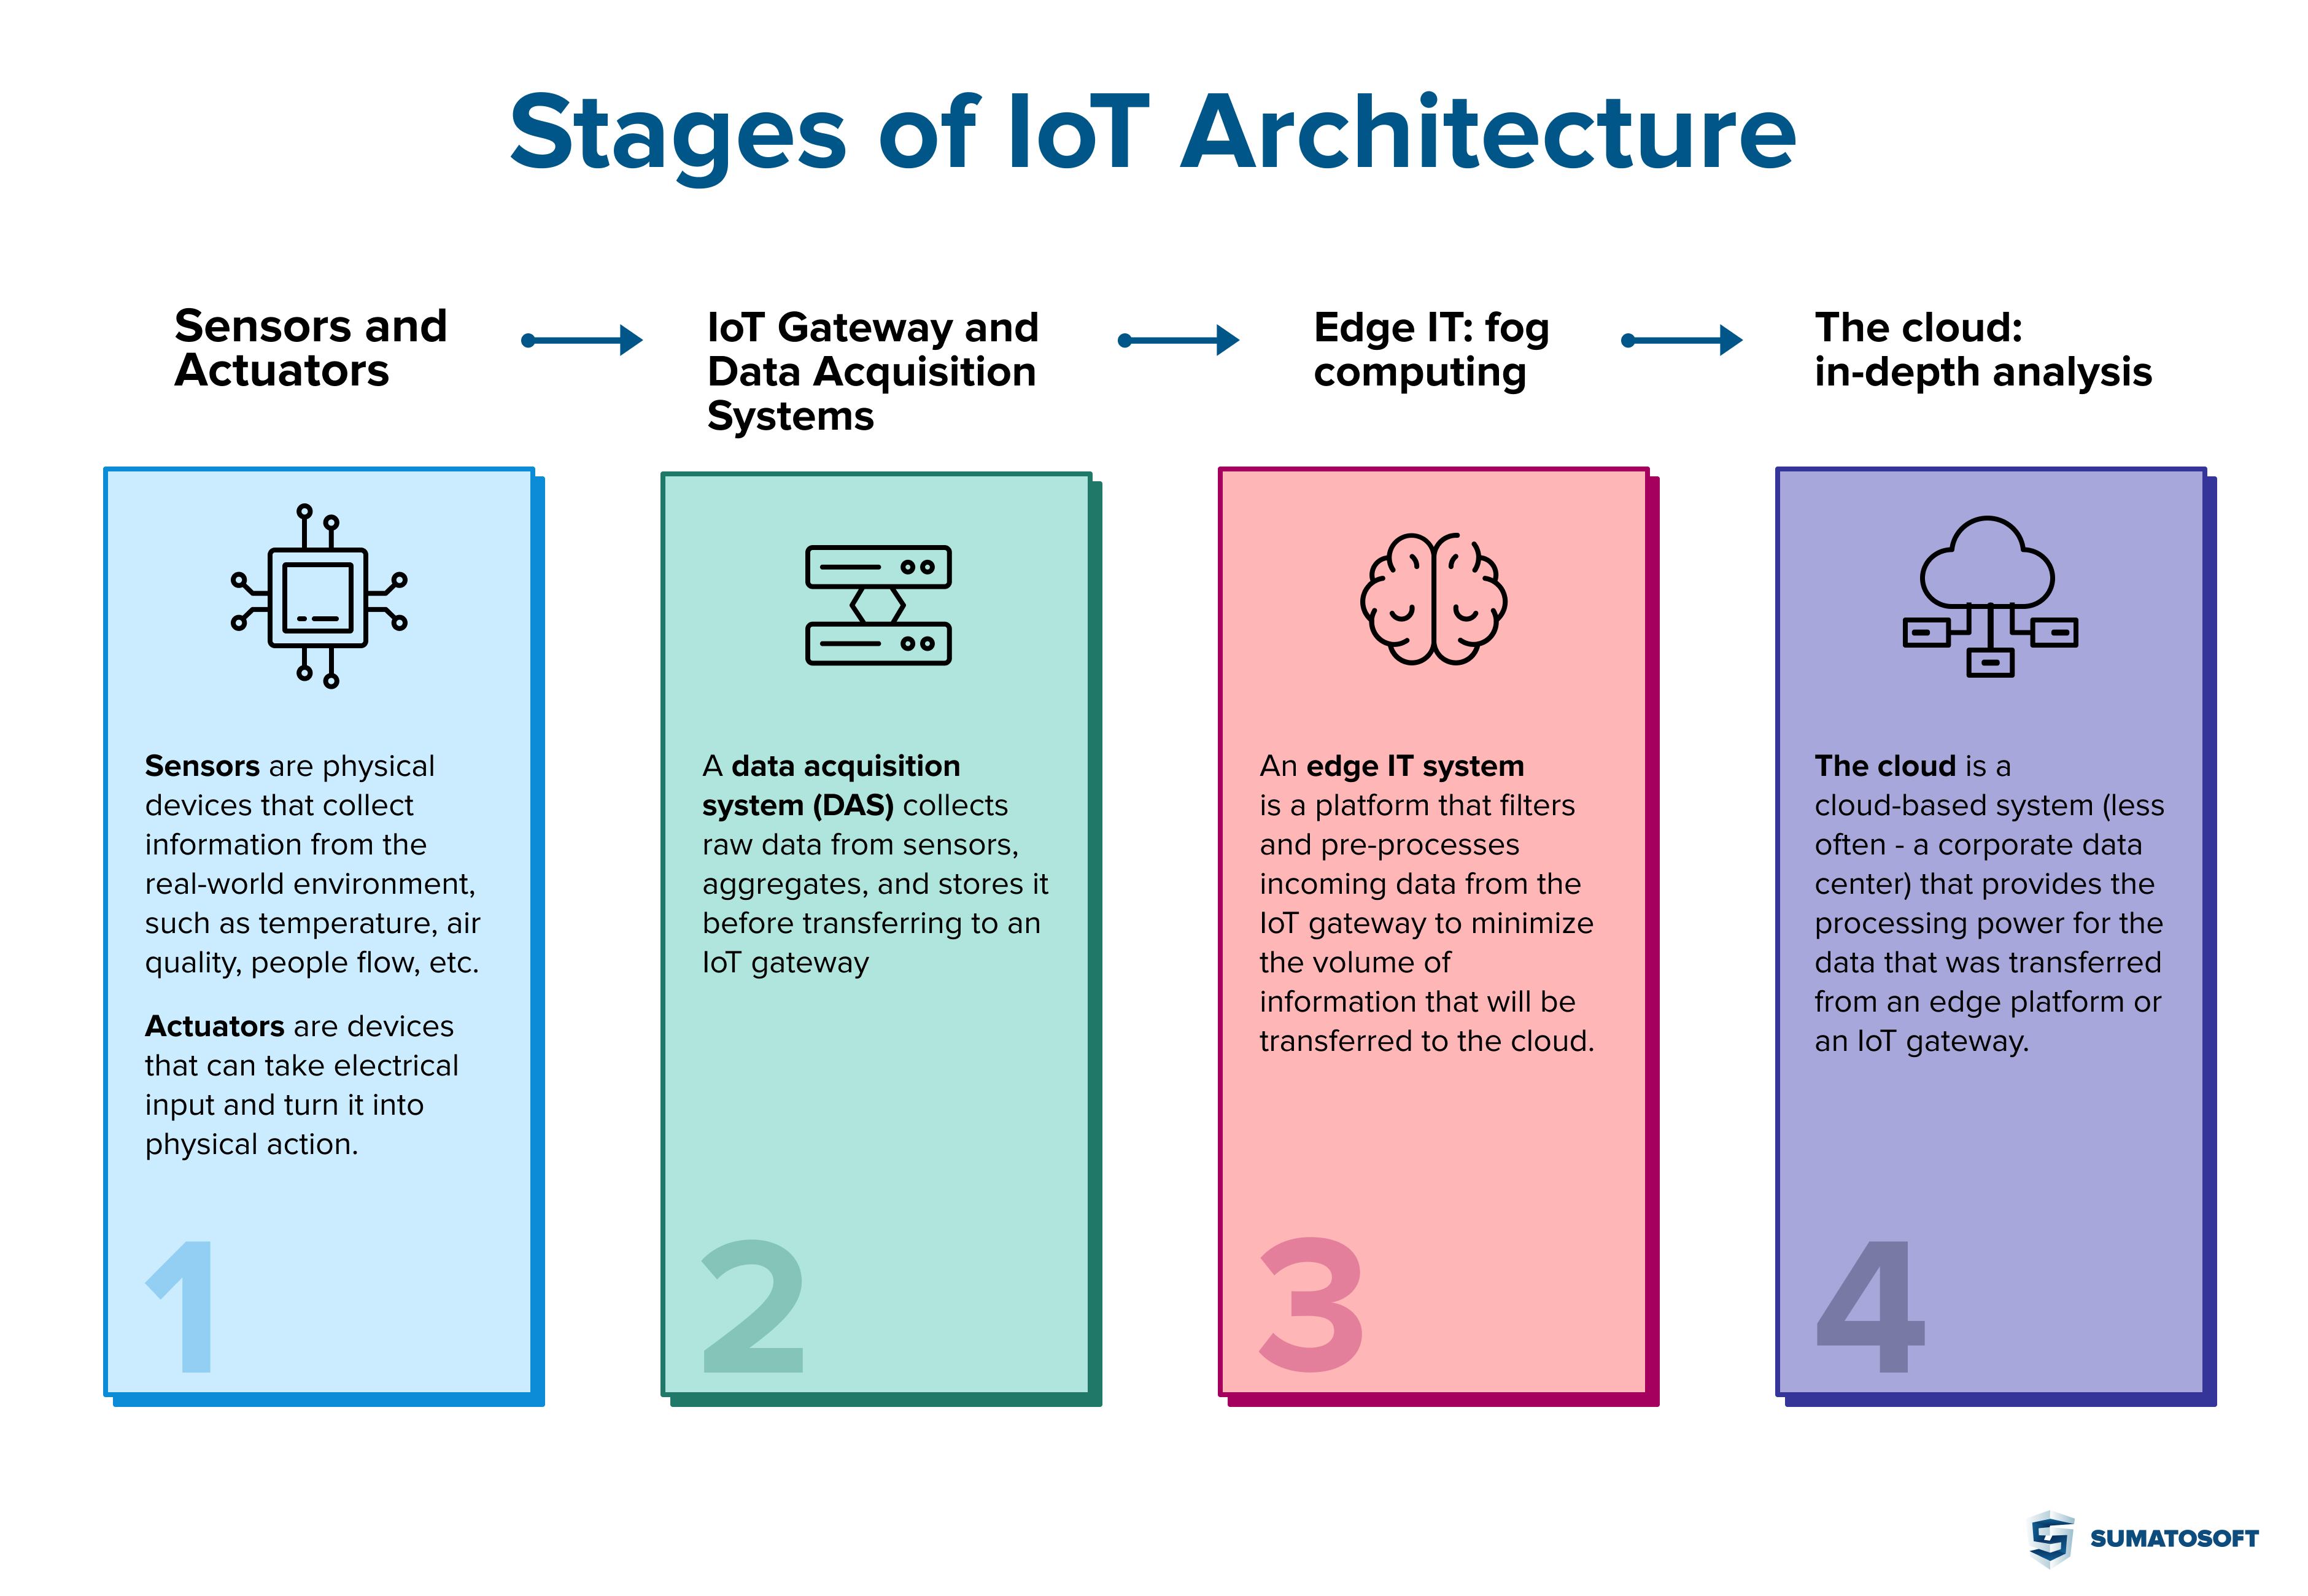 4 stages of IoT architecture by SumatoSoft